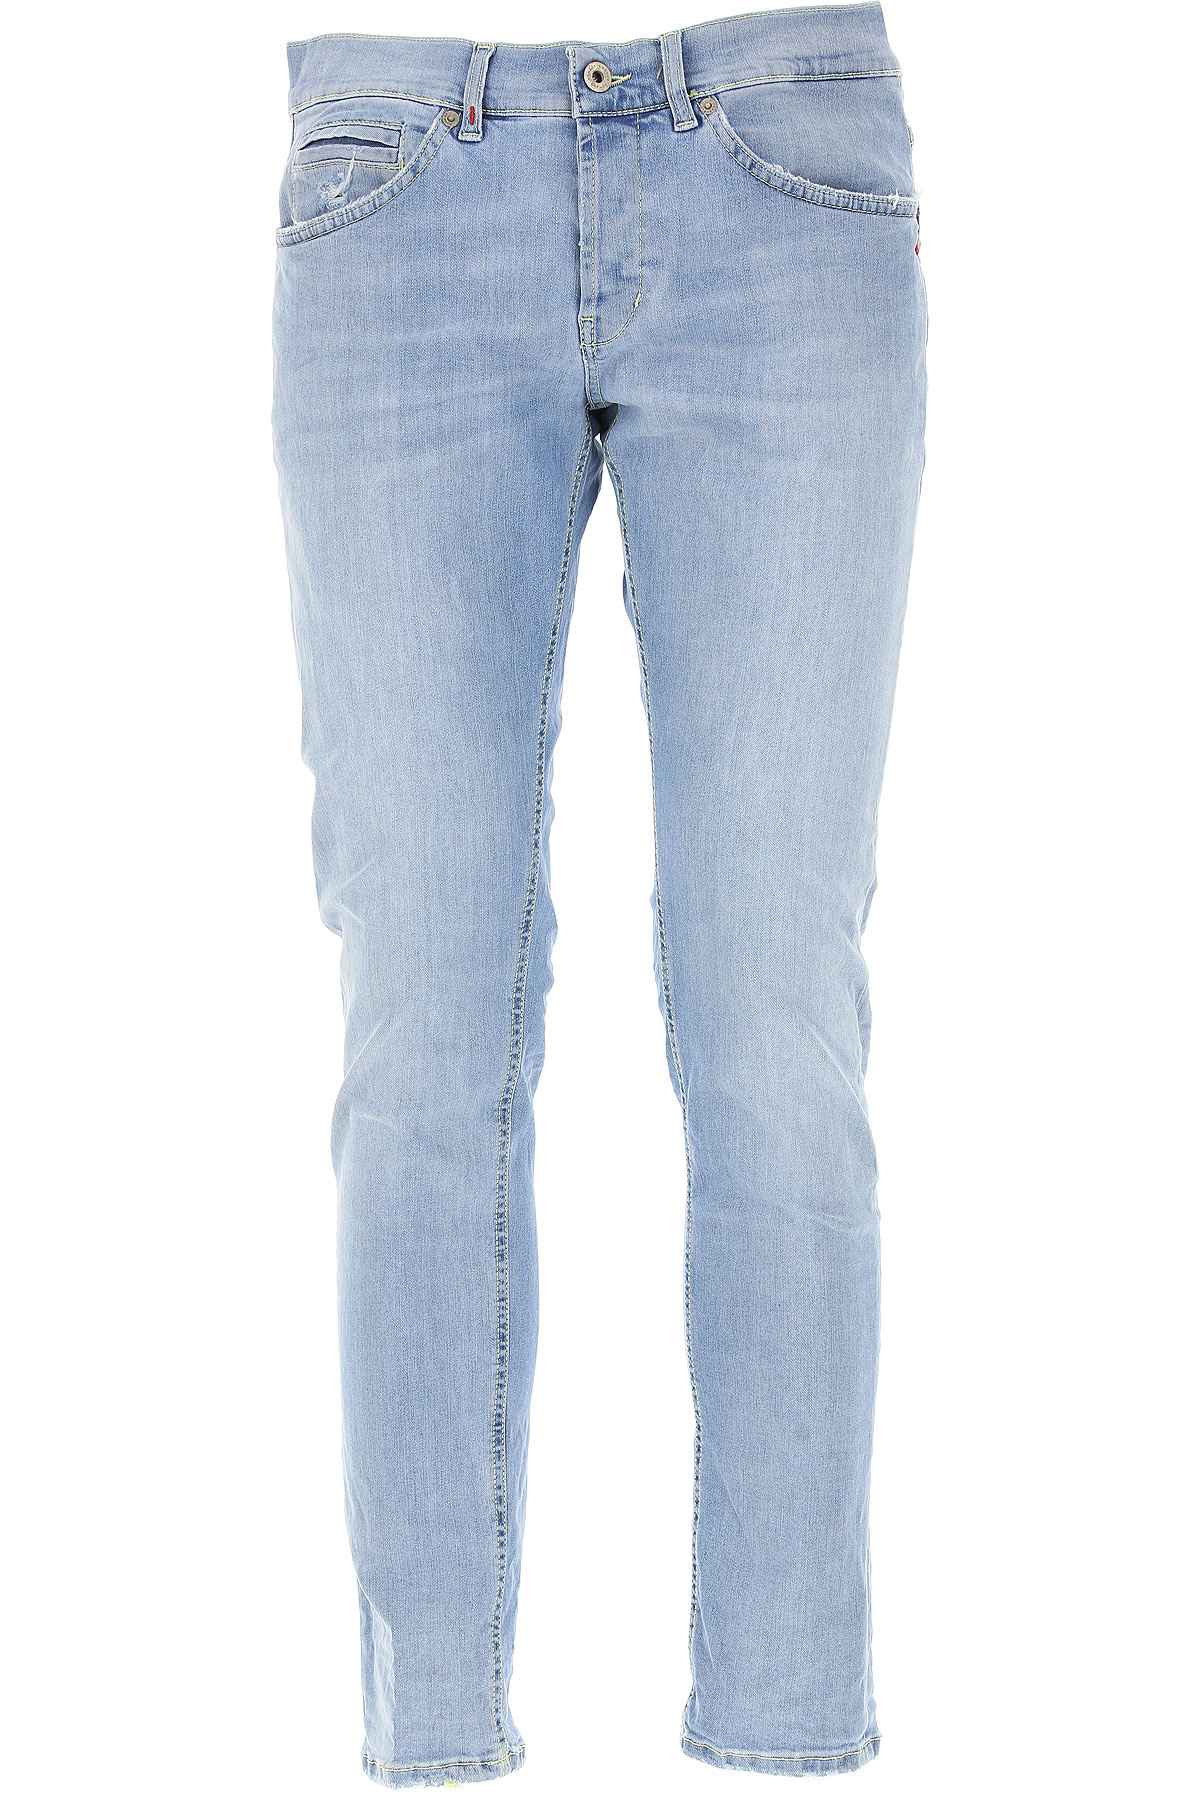 Dondup Jeans On Sale in Outlet, Denim, Cotton, 2017, 29 32 36